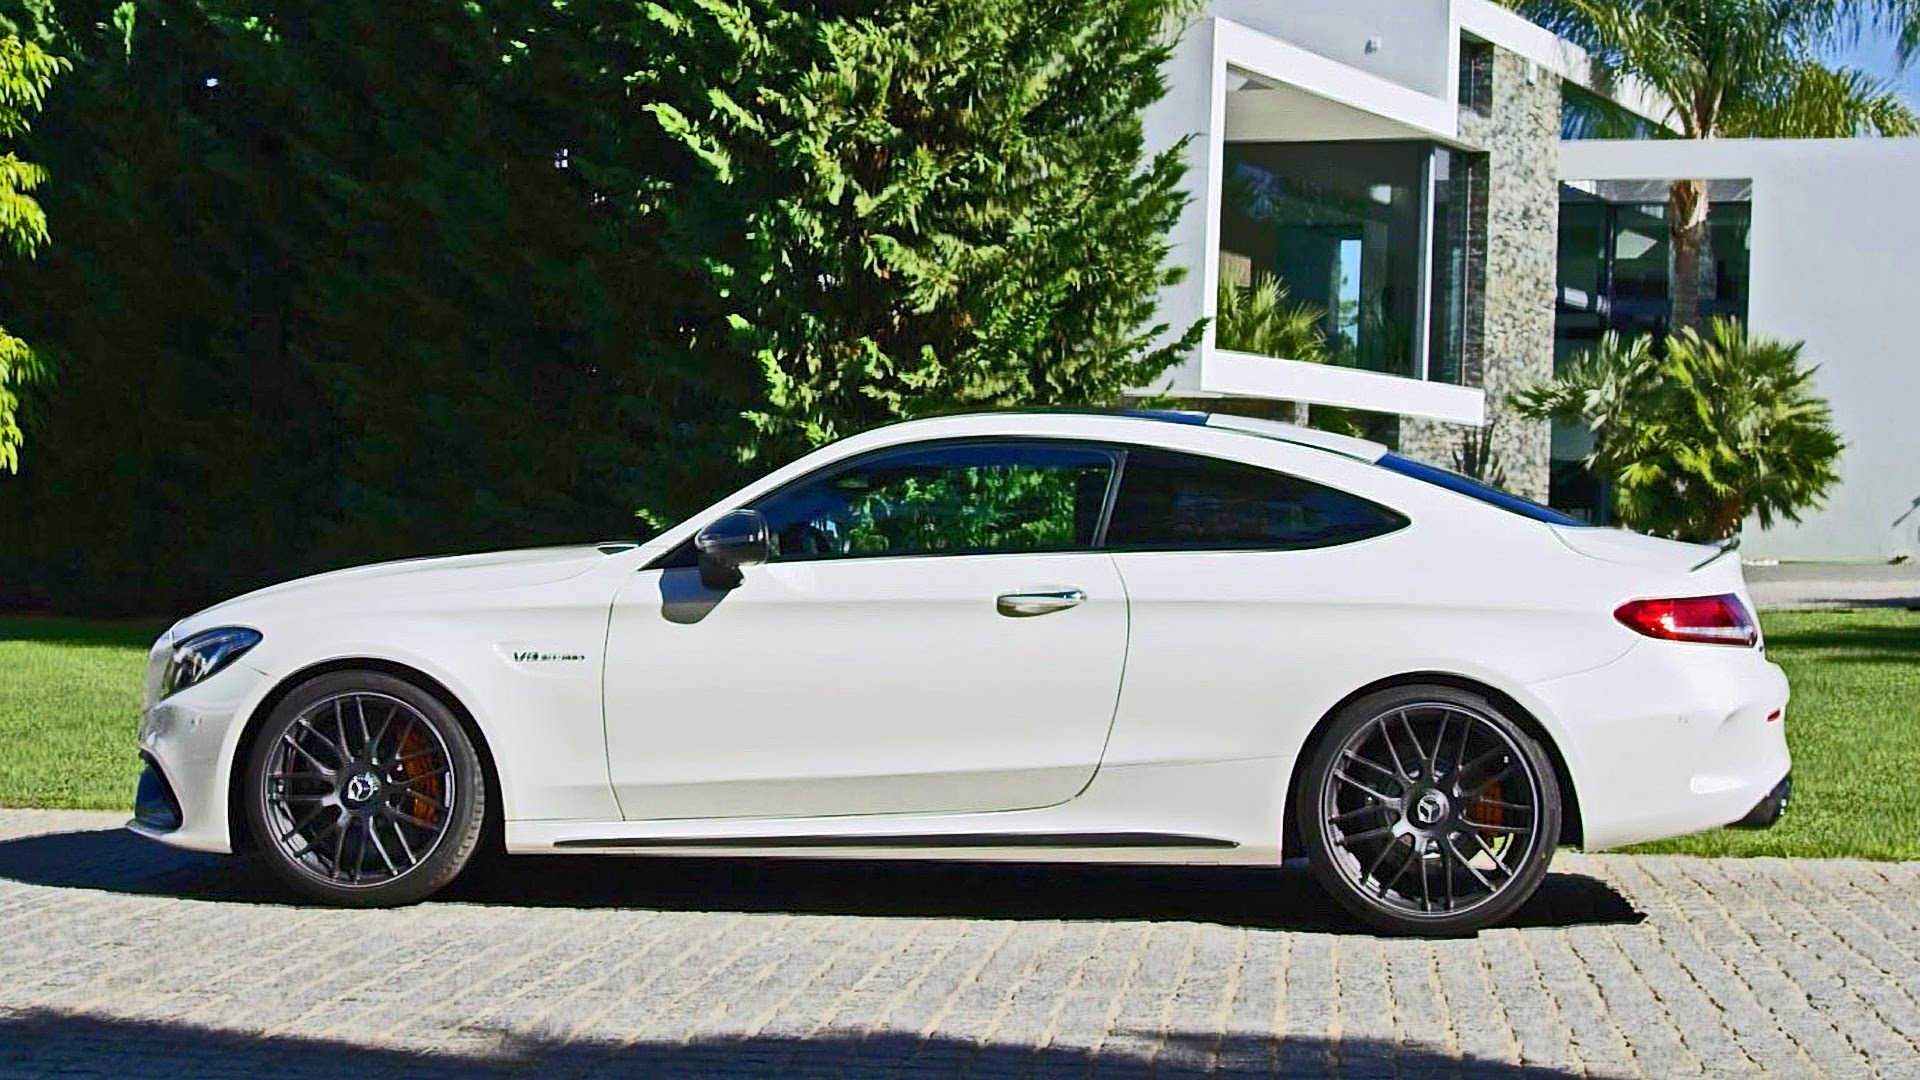 mercedes benz c63 amg coupe 2016 v8 de 510cv autos y. Black Bedroom Furniture Sets. Home Design Ideas